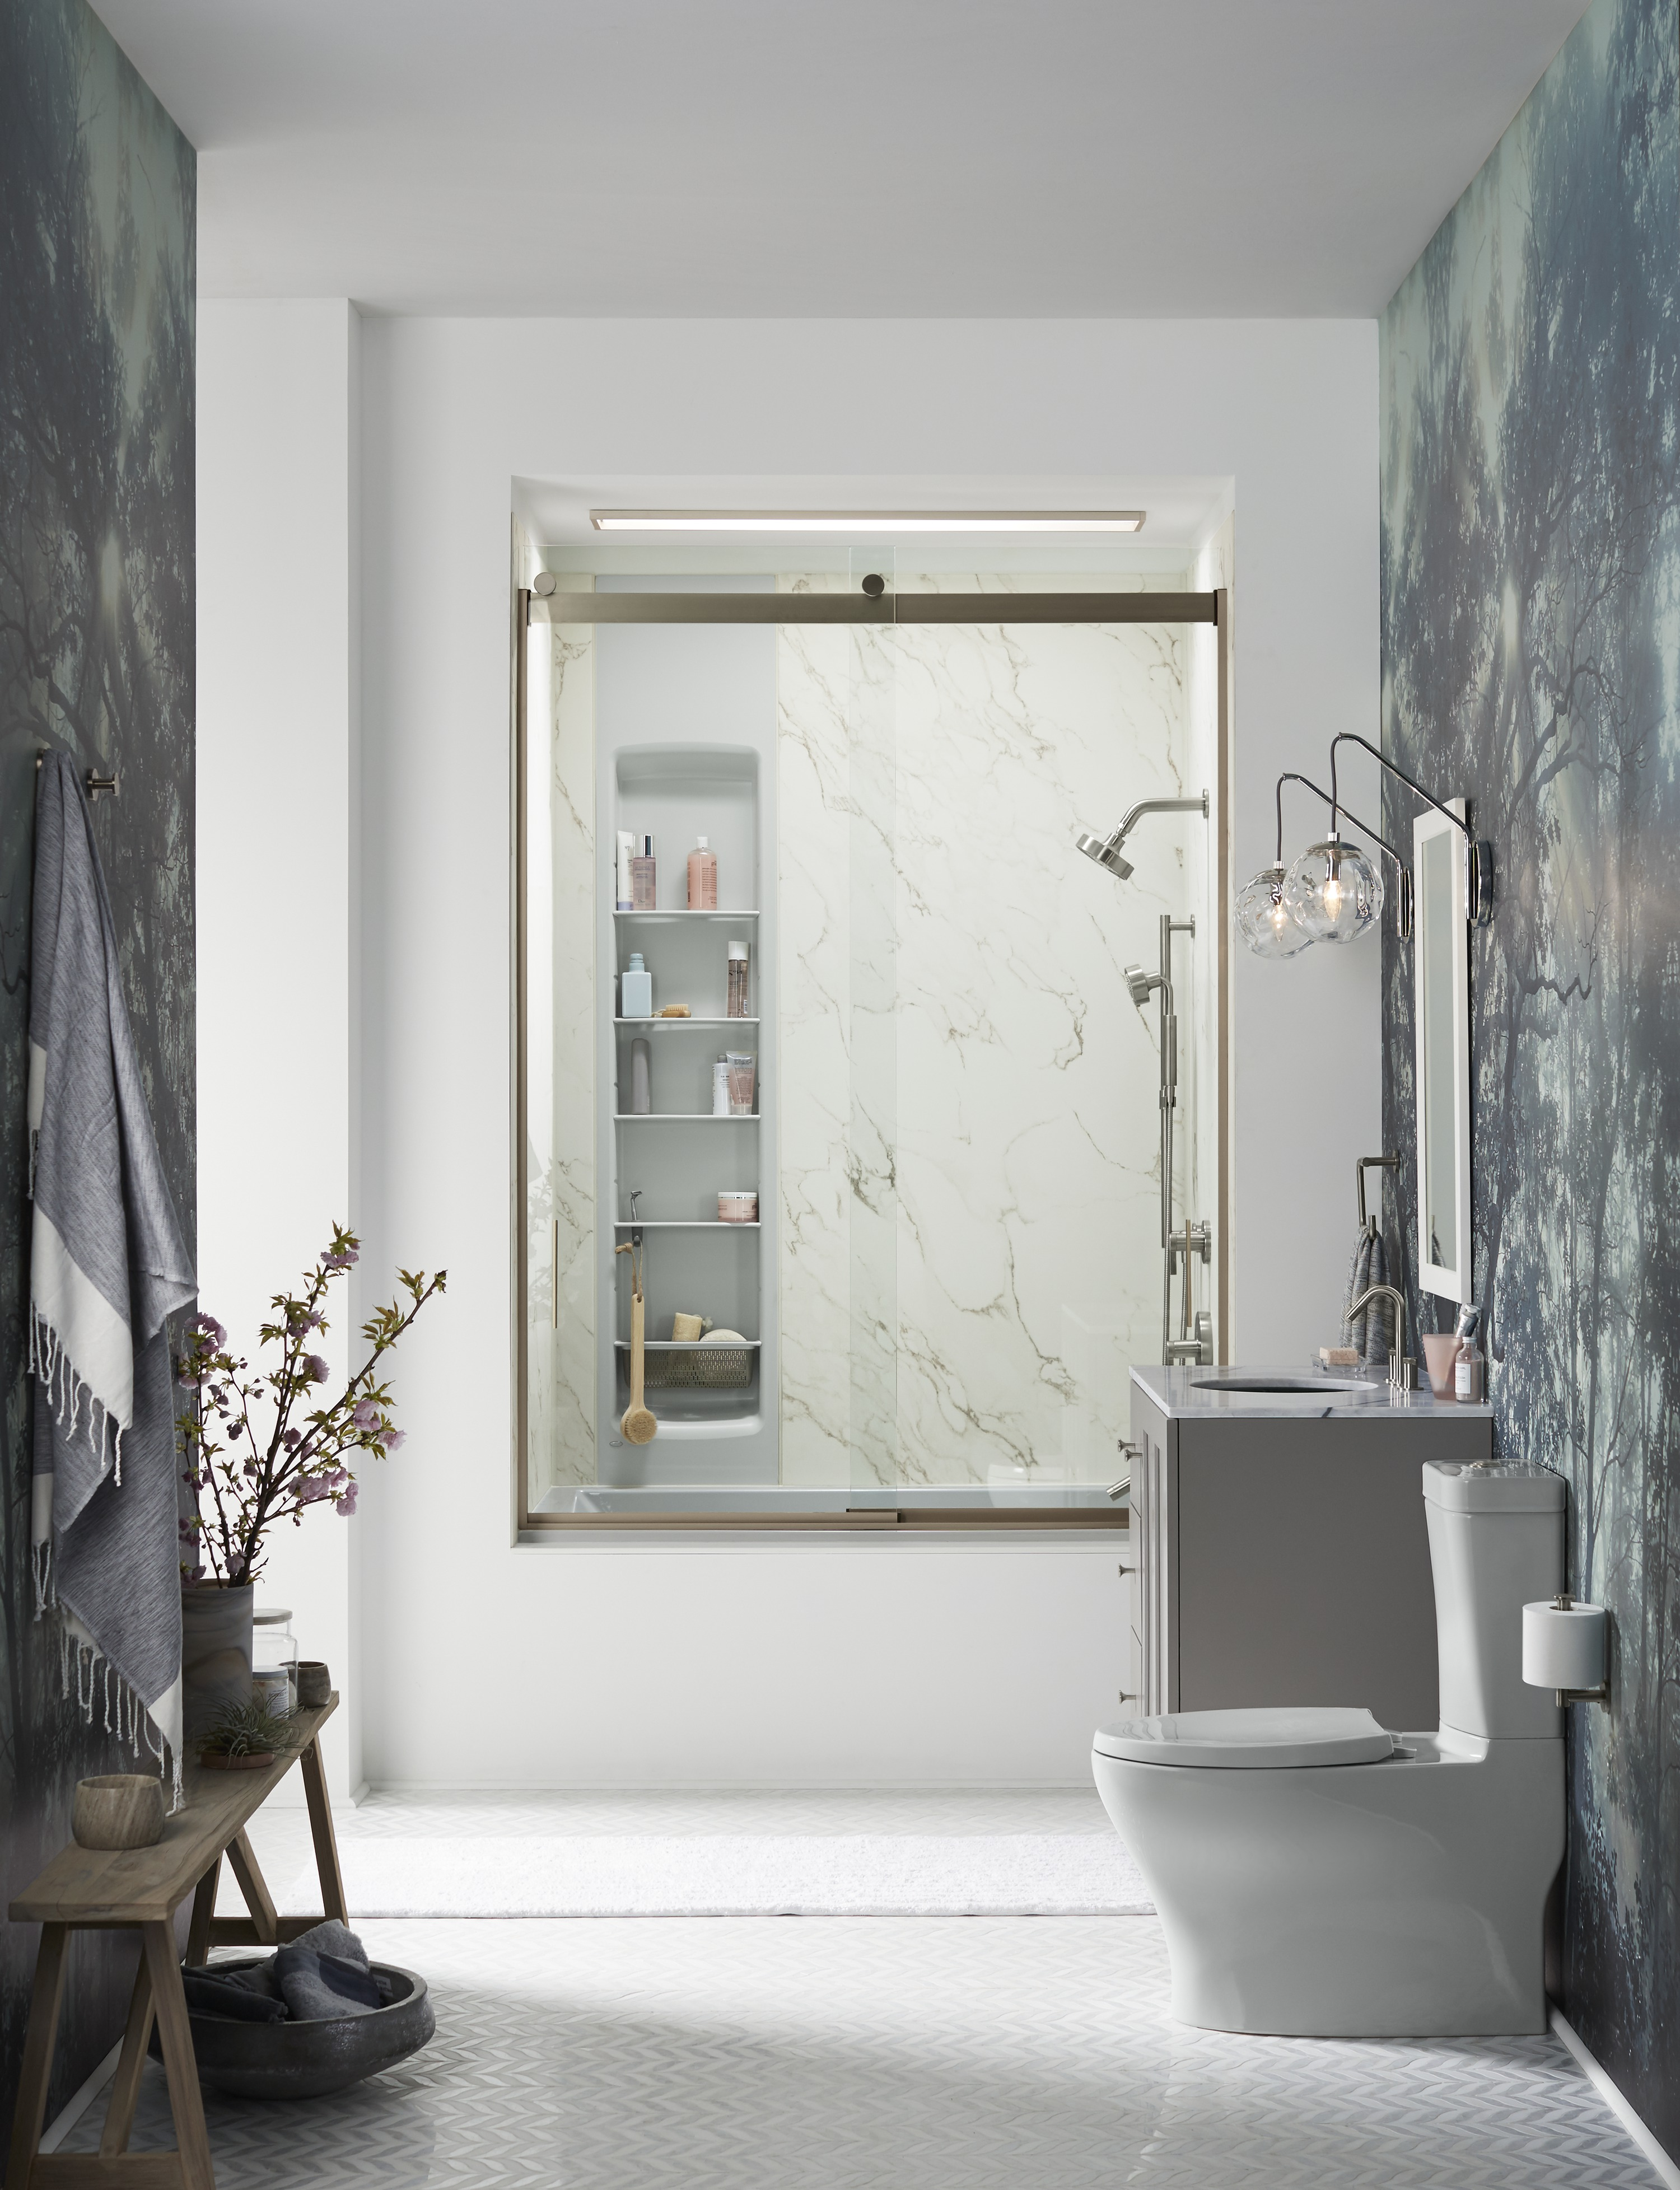 Choreograph® shower walls     Choreograph Shower Locker® storage     Shampoos,  soaps, loofahs and razors are easy to find and grab with built-in shower storage.